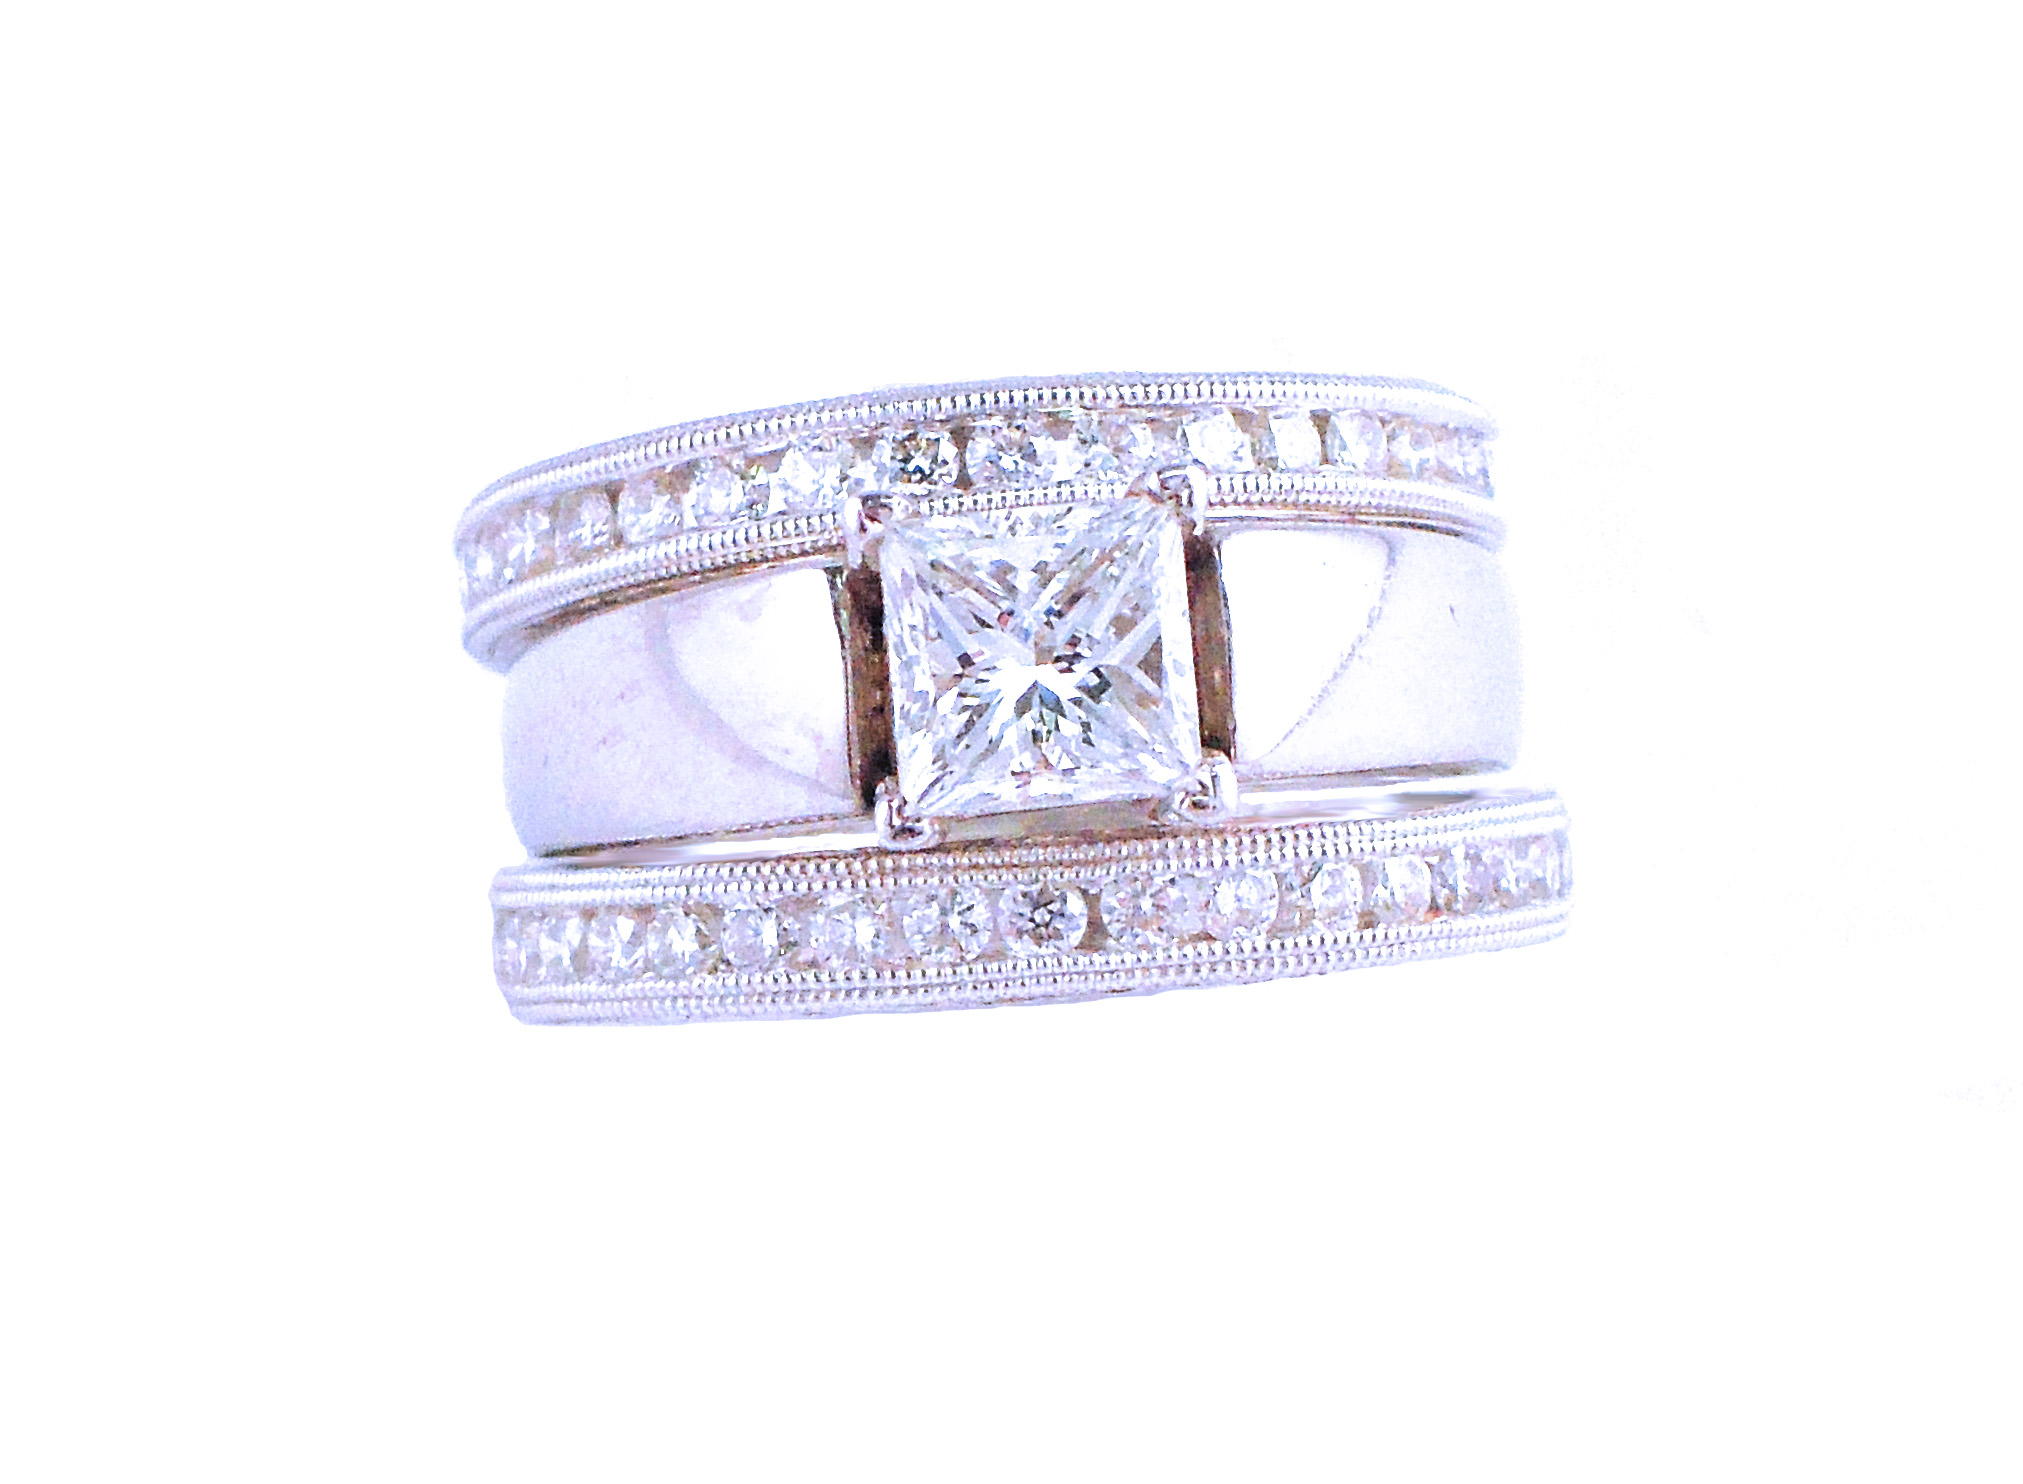 Princess-Cut Solitaire Diamond Engagement Ring with Matching Diamond Eternity Bands